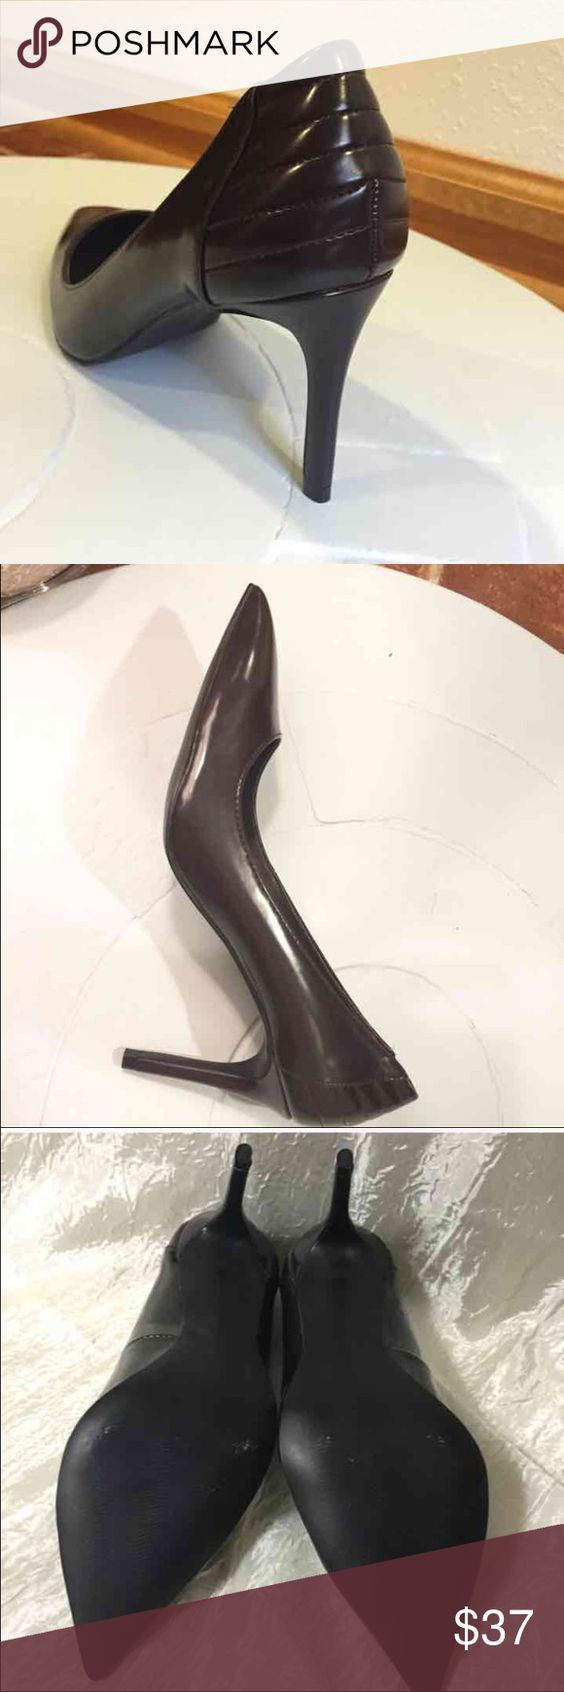 STEVE MADDEN PUMPER PUMPS Chocolate brown pointed toe 4in heel pumps. So classy, comfortable, and professional!!!! Smoke free home! Great deal! So pretty and stylish!!! This is a beautiful piece you can wear anywhere, school, work, office, interview, party, or casual!   Feel free to make an offer and check out my other items for bundling products for a better deal!!! Steve Madden Shoes Heels